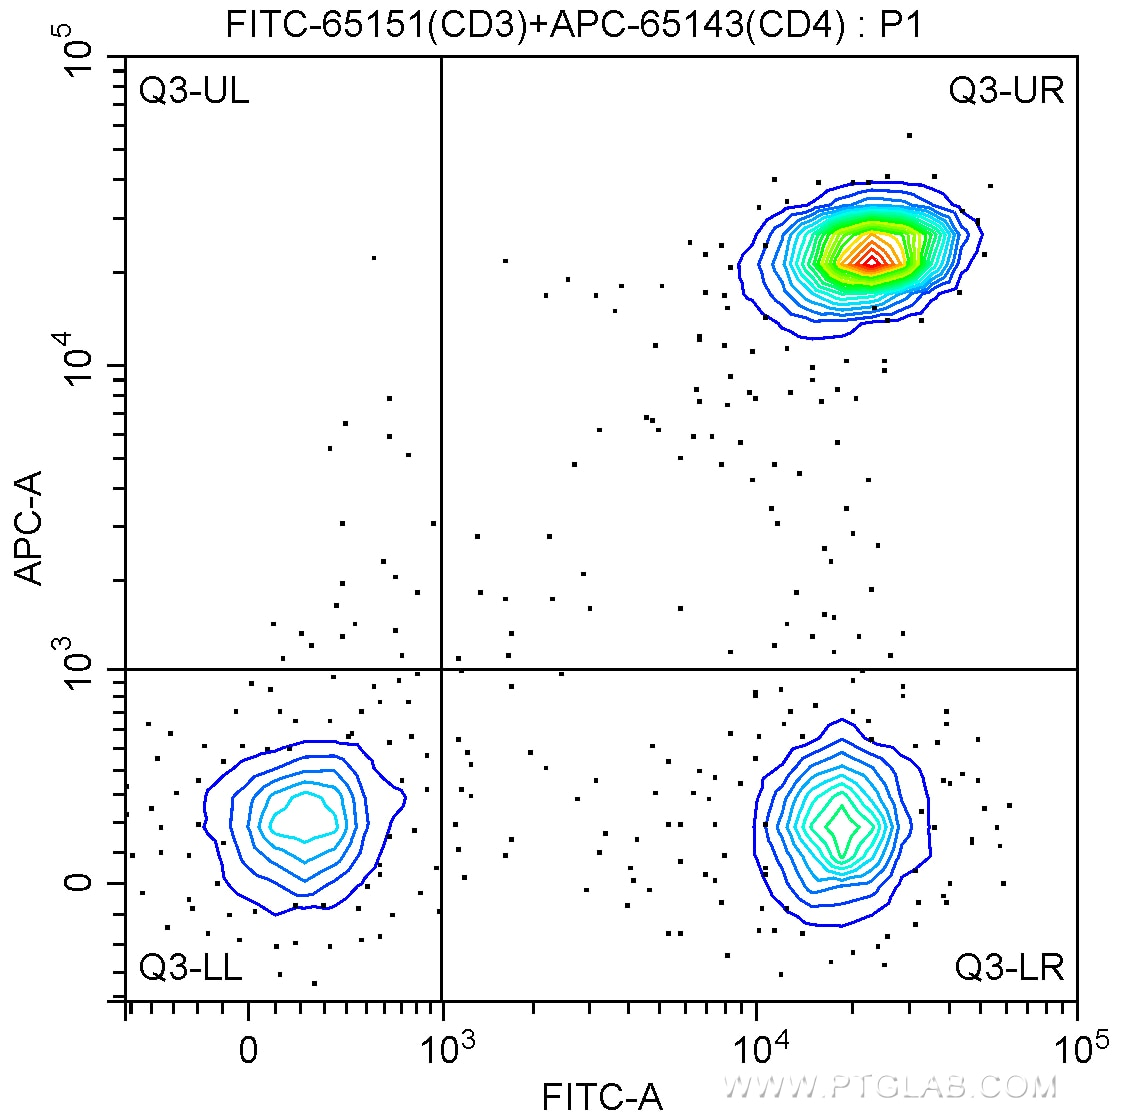 FC experiment of human peripheral blood lymphocytes using FITC-65151